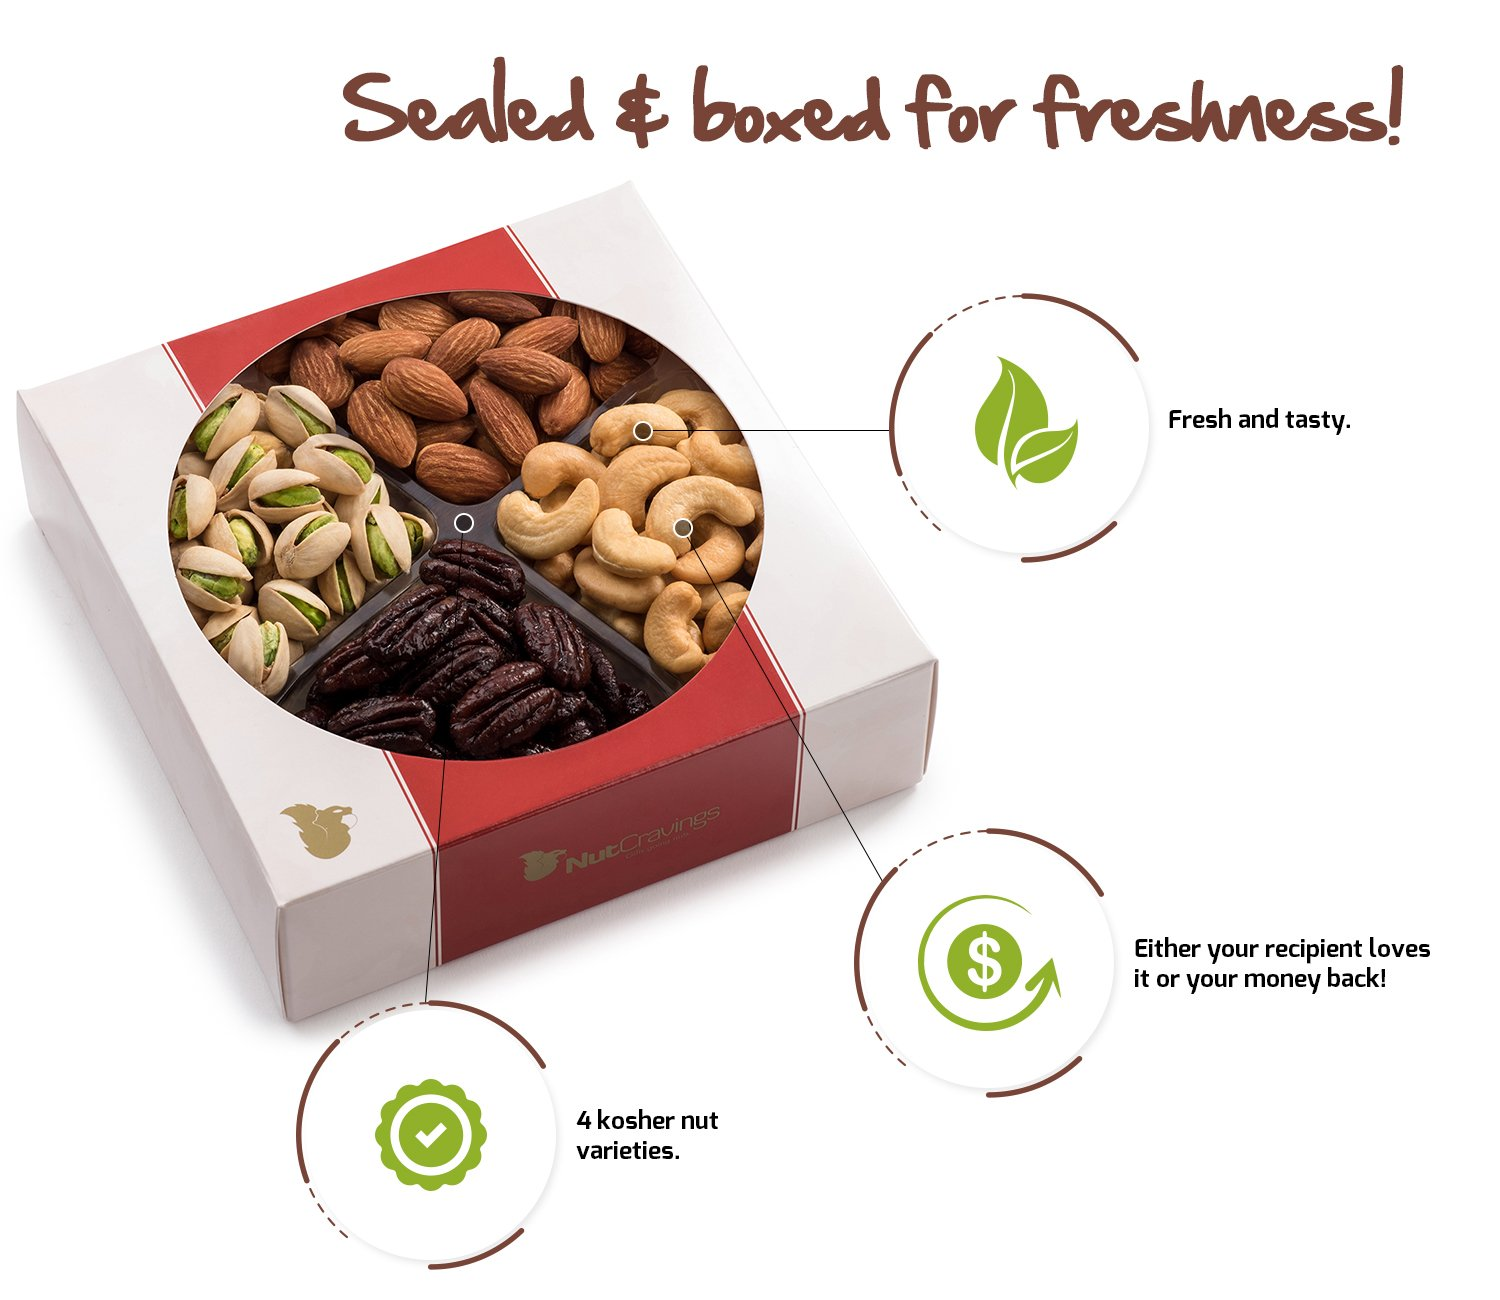 Nut Cravings Father's Day Gift Baskets - 4-Sectional Gourmet Mixed Nuts Prime Food Gift Tray - Healthy Holiday Gift Assortment For Birthday - Sympathy - Get Well - Corporate Gift Box - Or Any Occasion by Nut Cravings (Image #3)